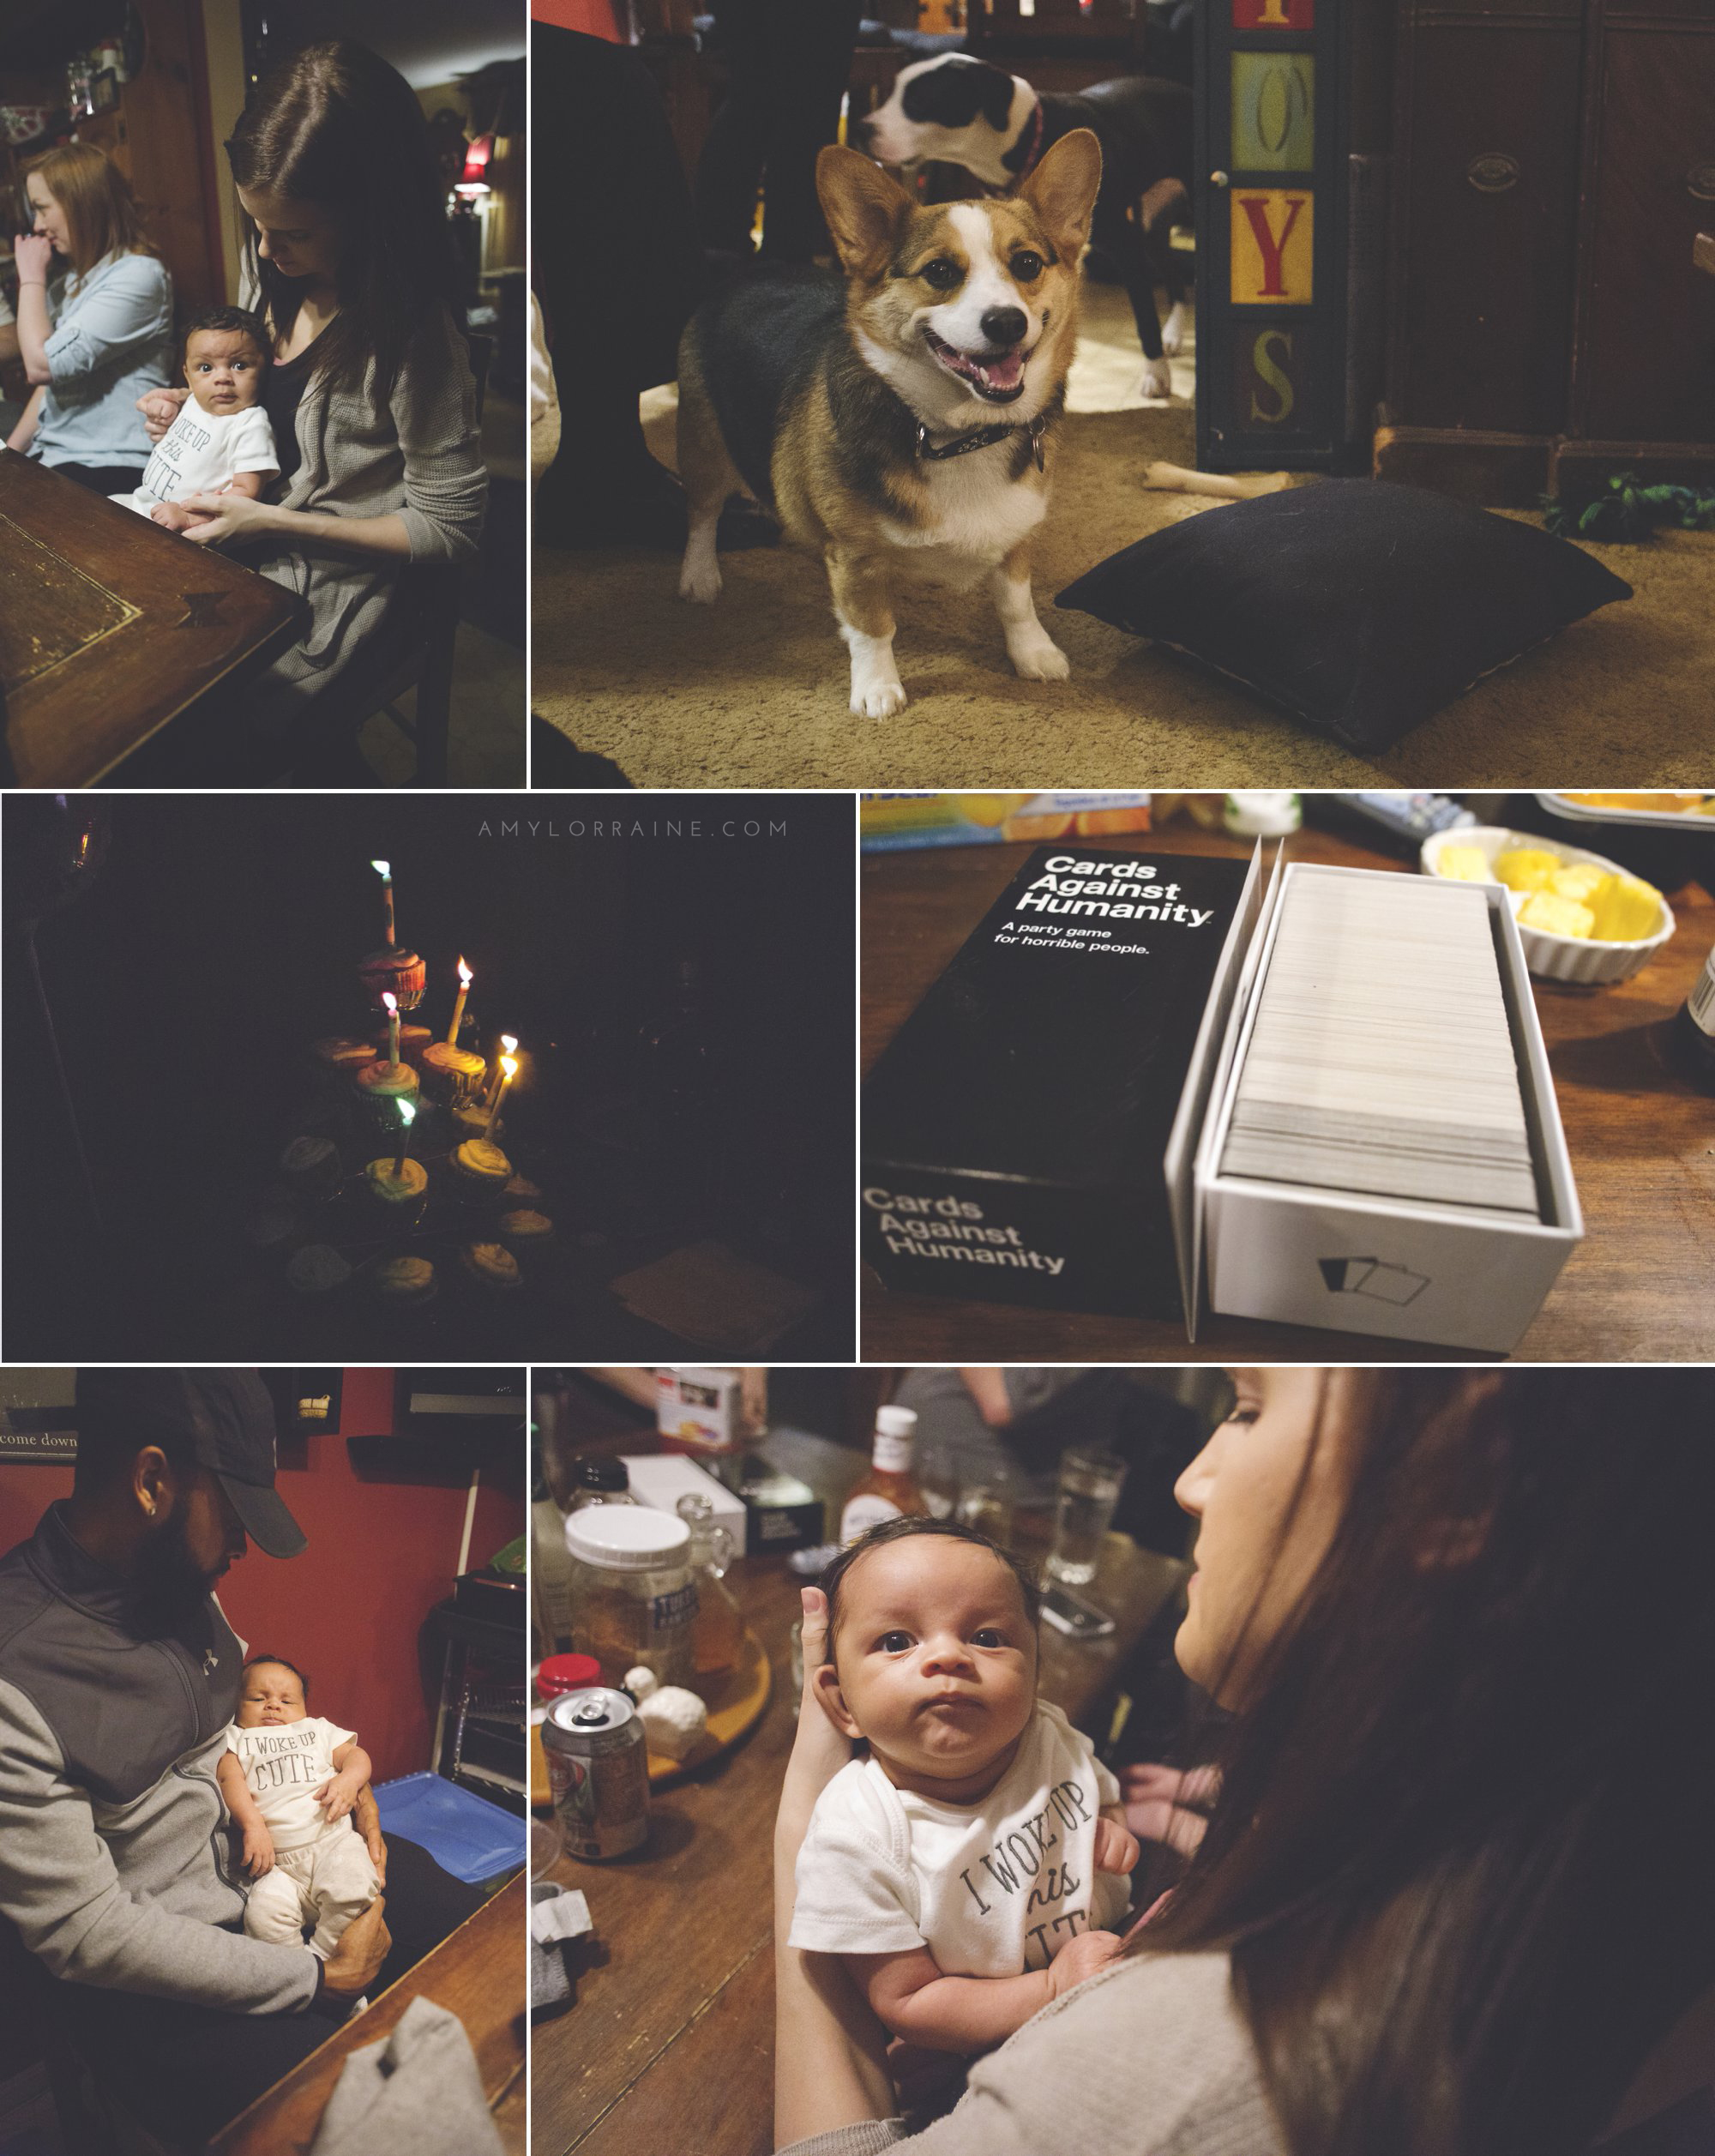 Weekend Adventures | Great Sage, Birthday Celebrations + A New Puppy | www.amylorraine.com